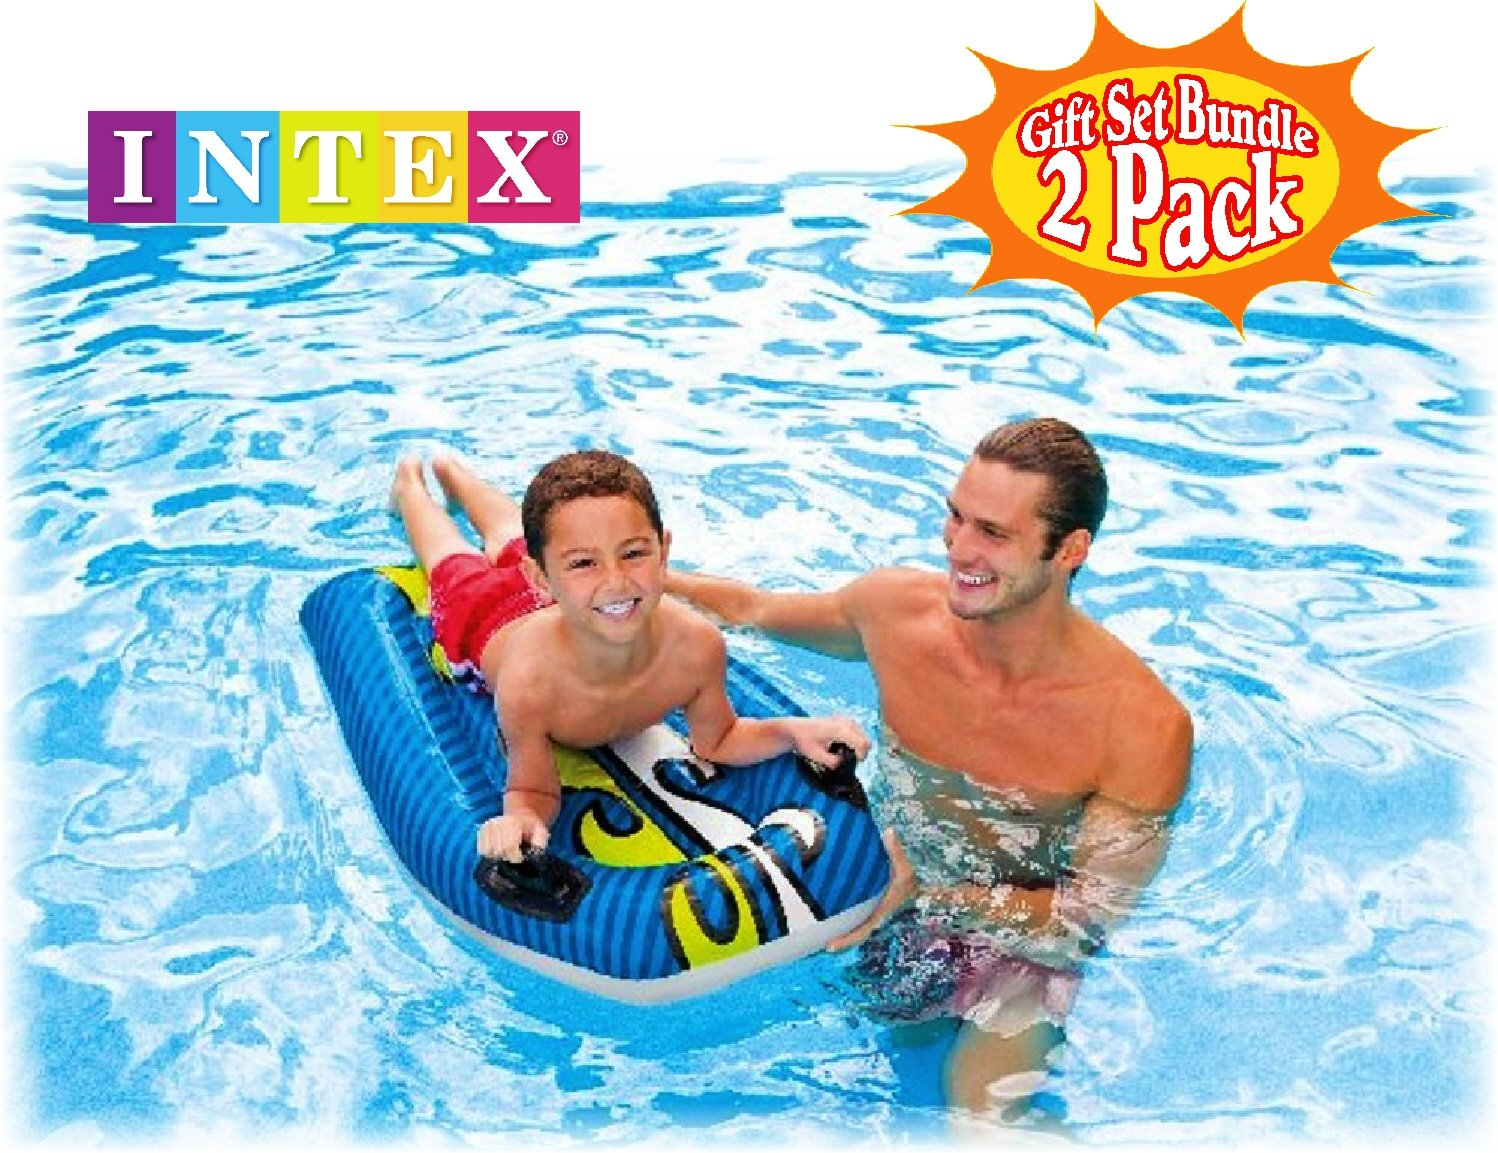 Amazon.com: Intex Joy Rider Surf n Slide Pool Floats (44